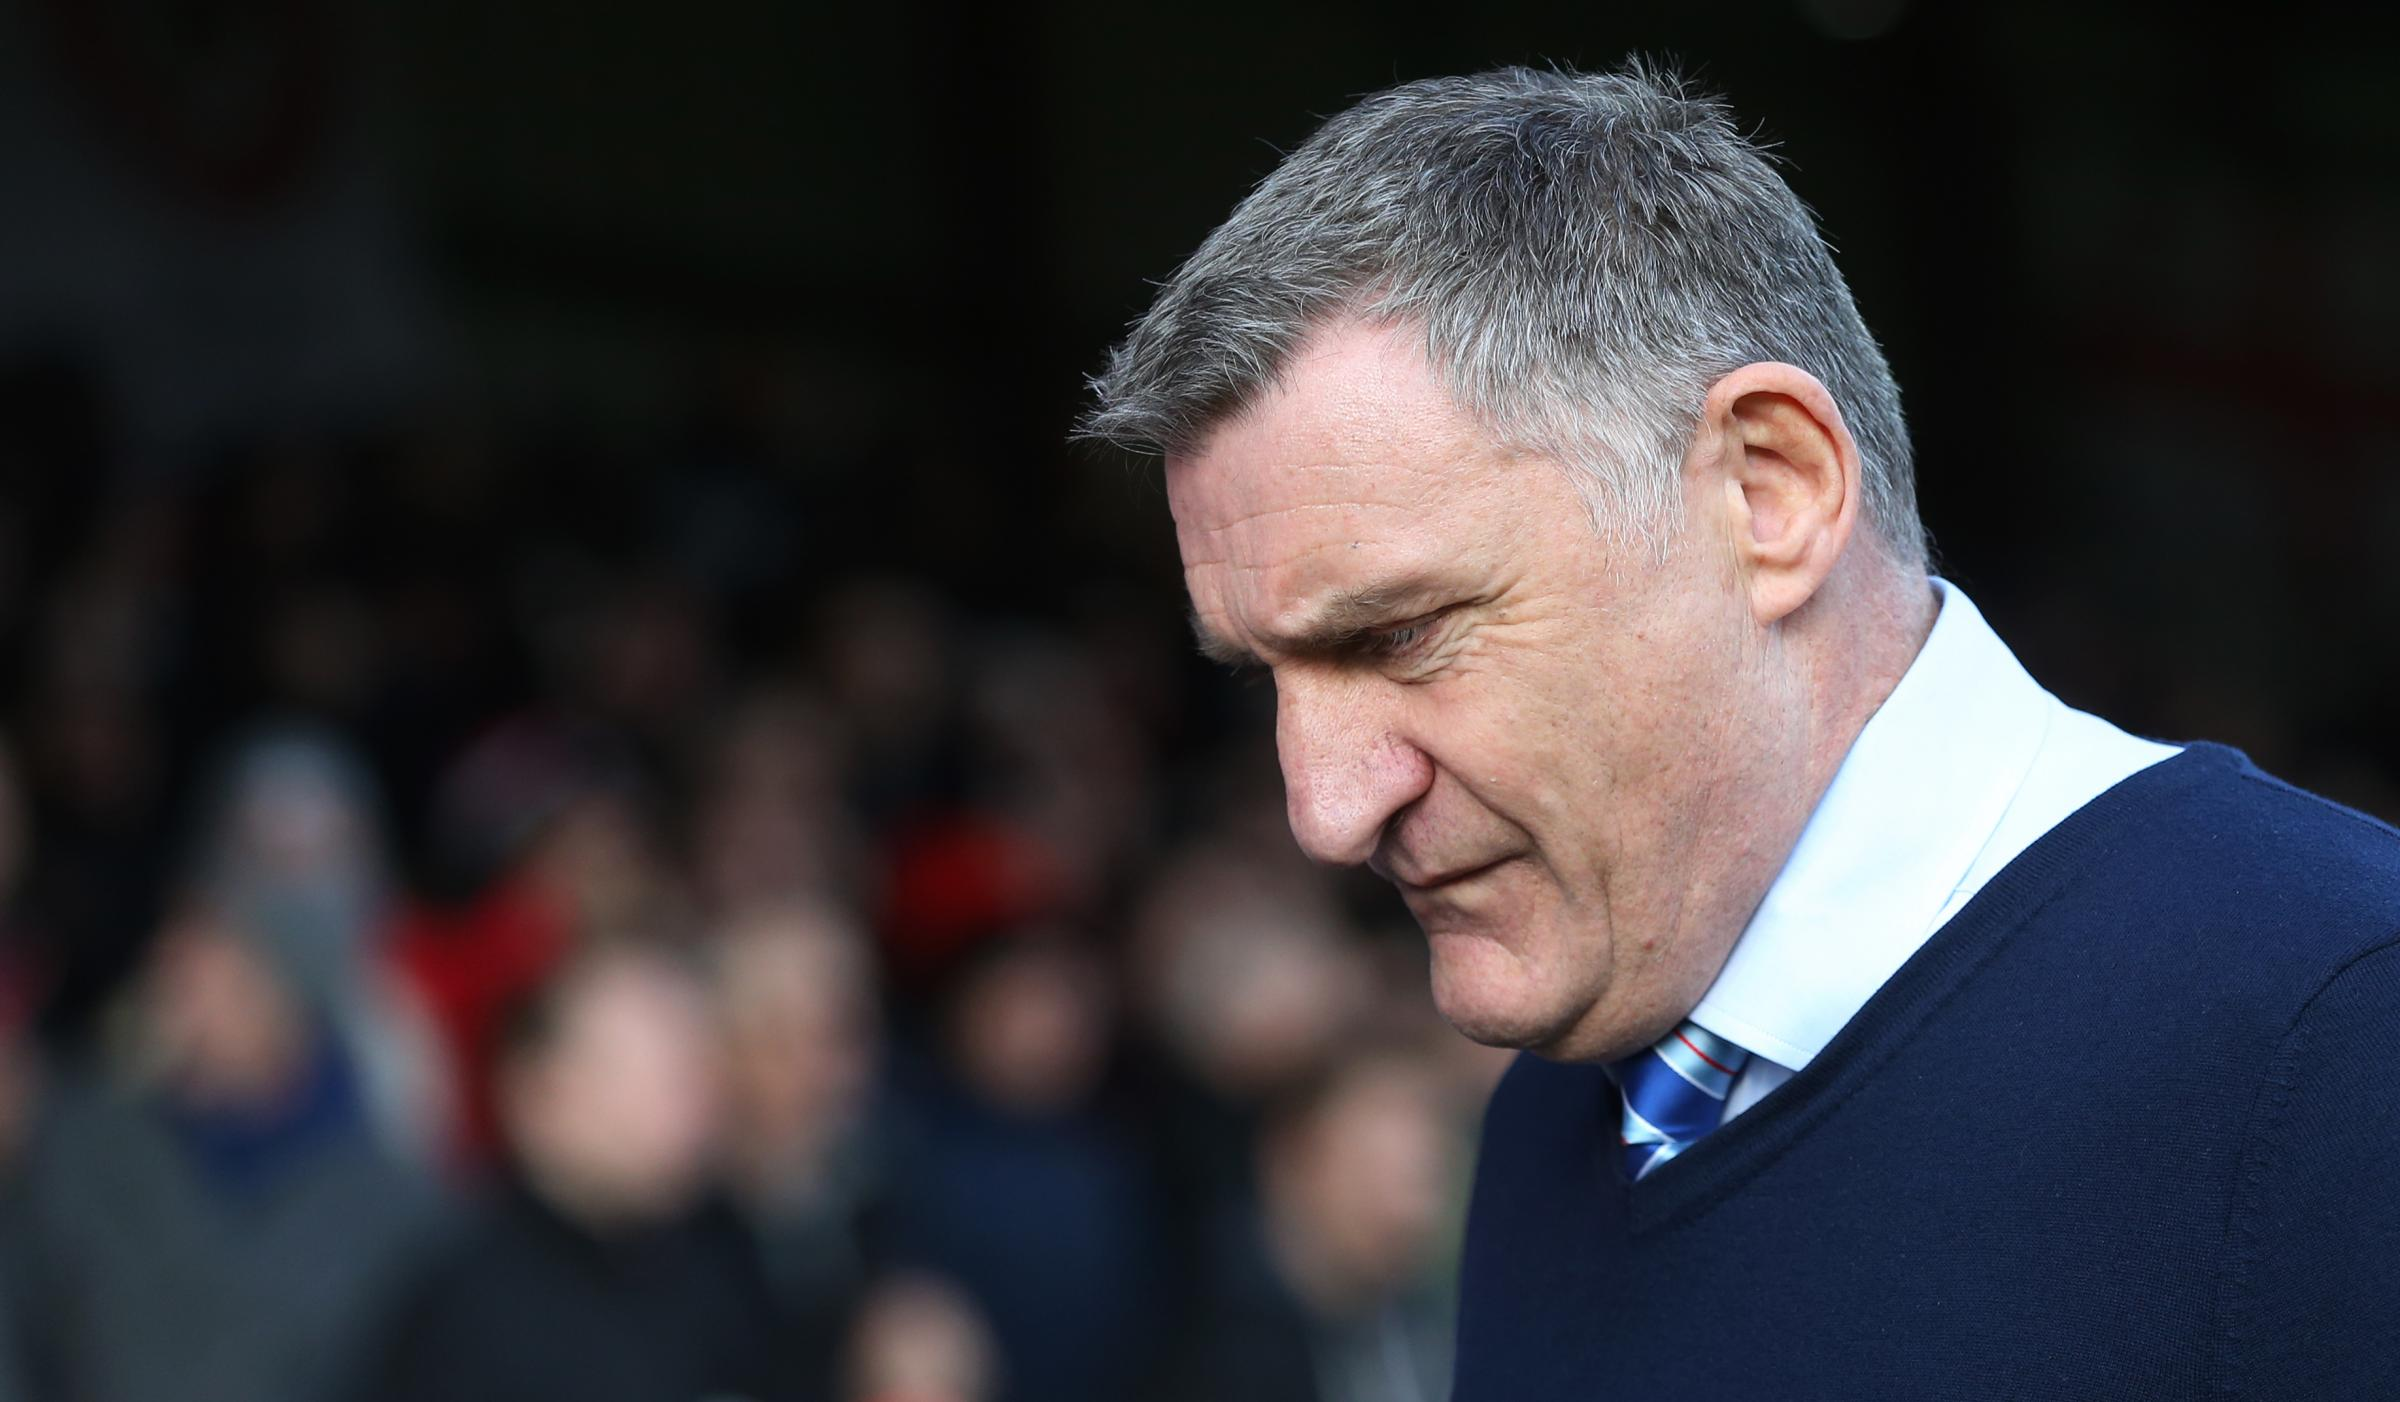 Tony Mowbray knows his next challenge as Rovers boss will be to improve the starting XI